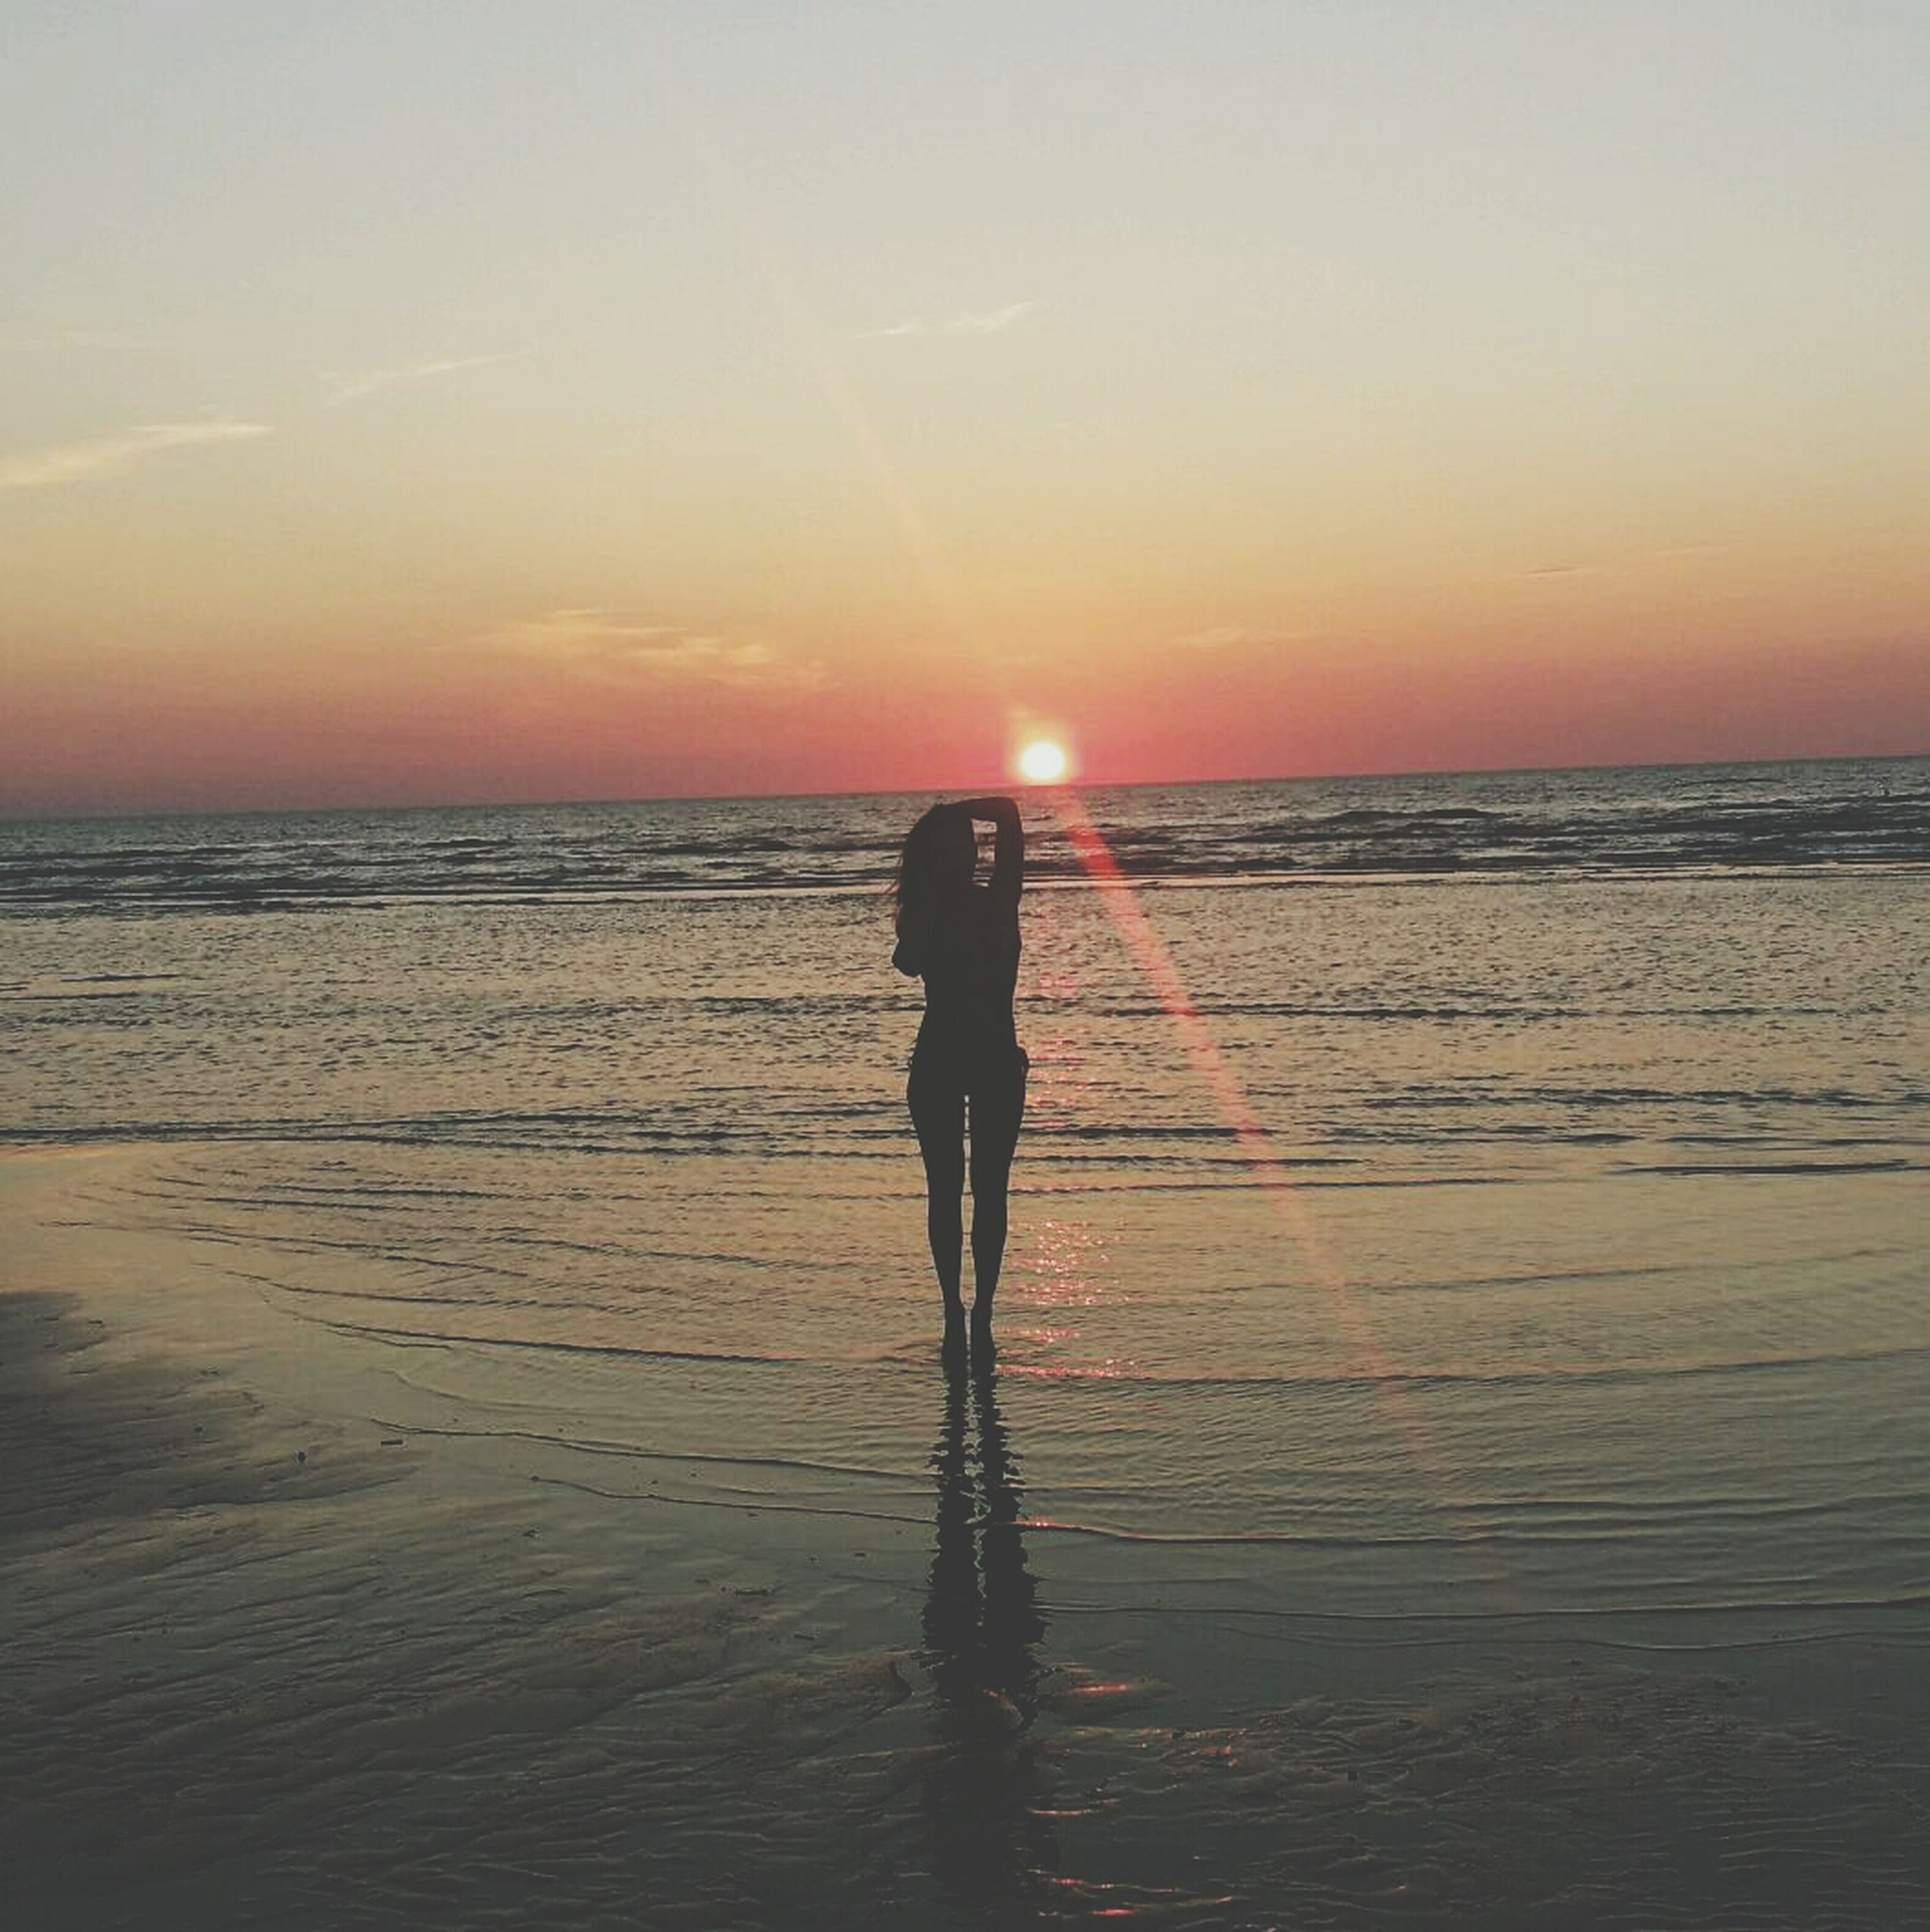 sunset, sea, beach, horizon over water, water, sun, shore, silhouette, orange color, lifestyles, full length, leisure activity, tranquil scene, scenics, standing, tranquility, sky, beauty in nature